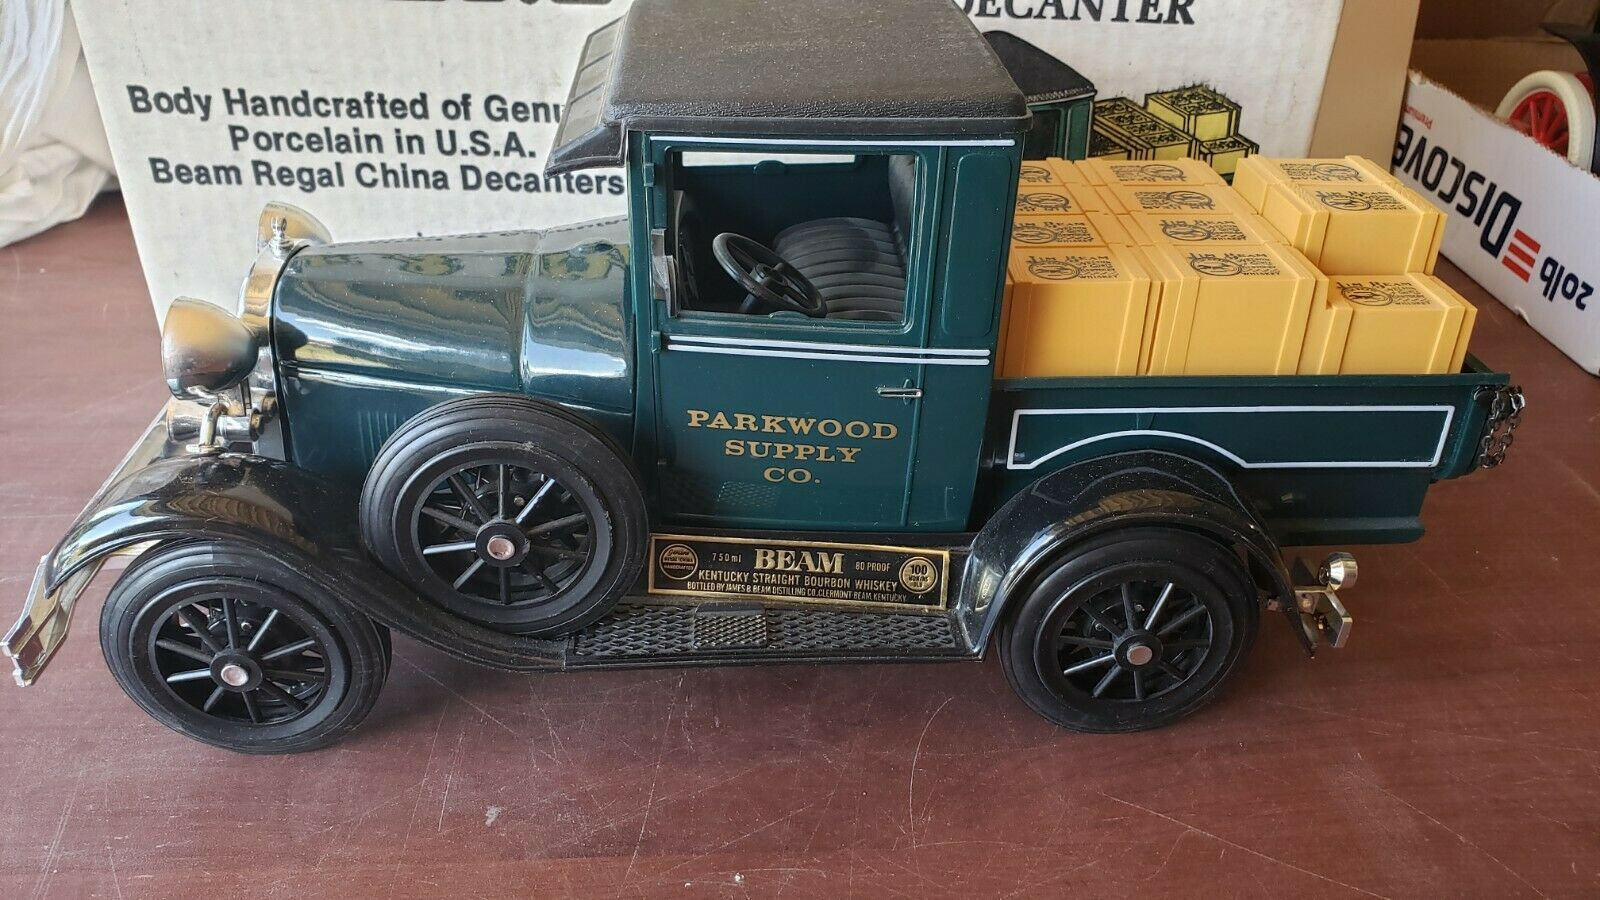 Vintage Jim Beam 1928 29 Model A Ford Pickup Truck Decanter